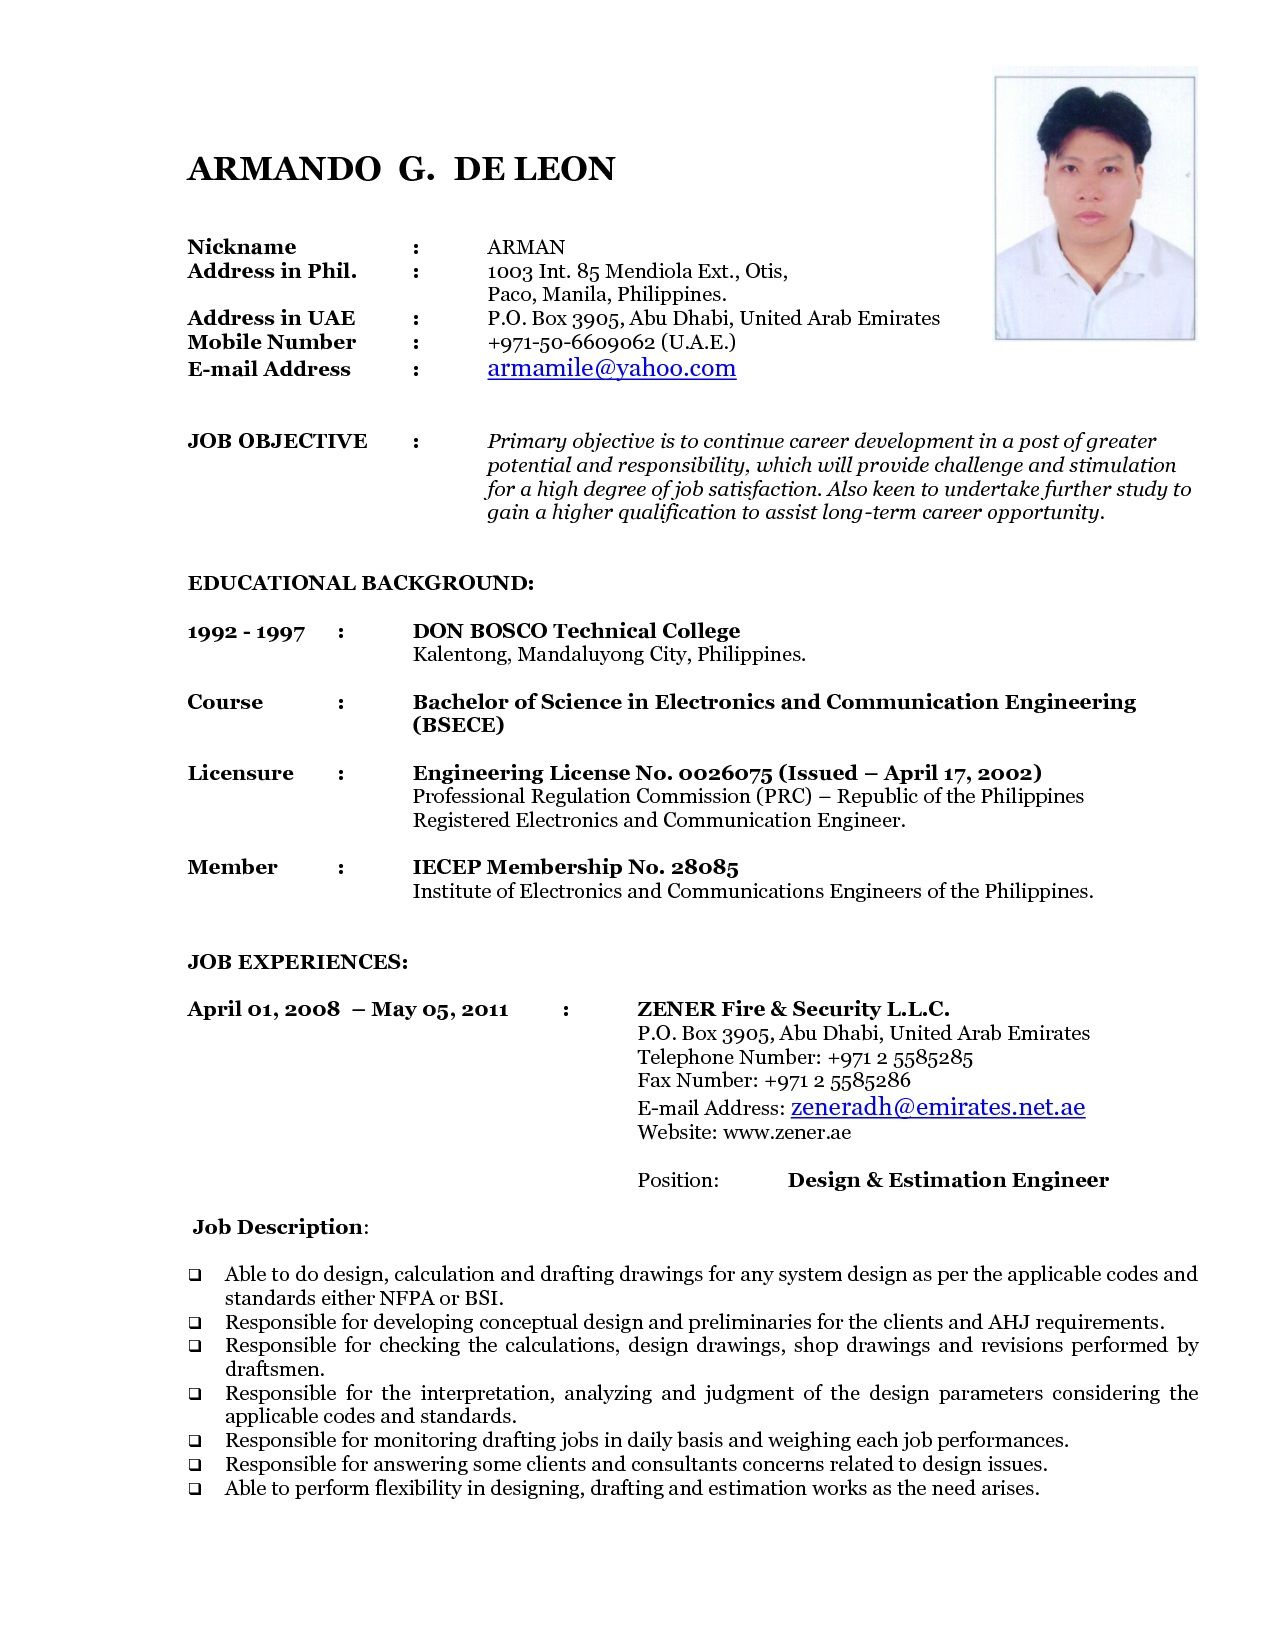 Sample Resume Teachers Elementary Philippines